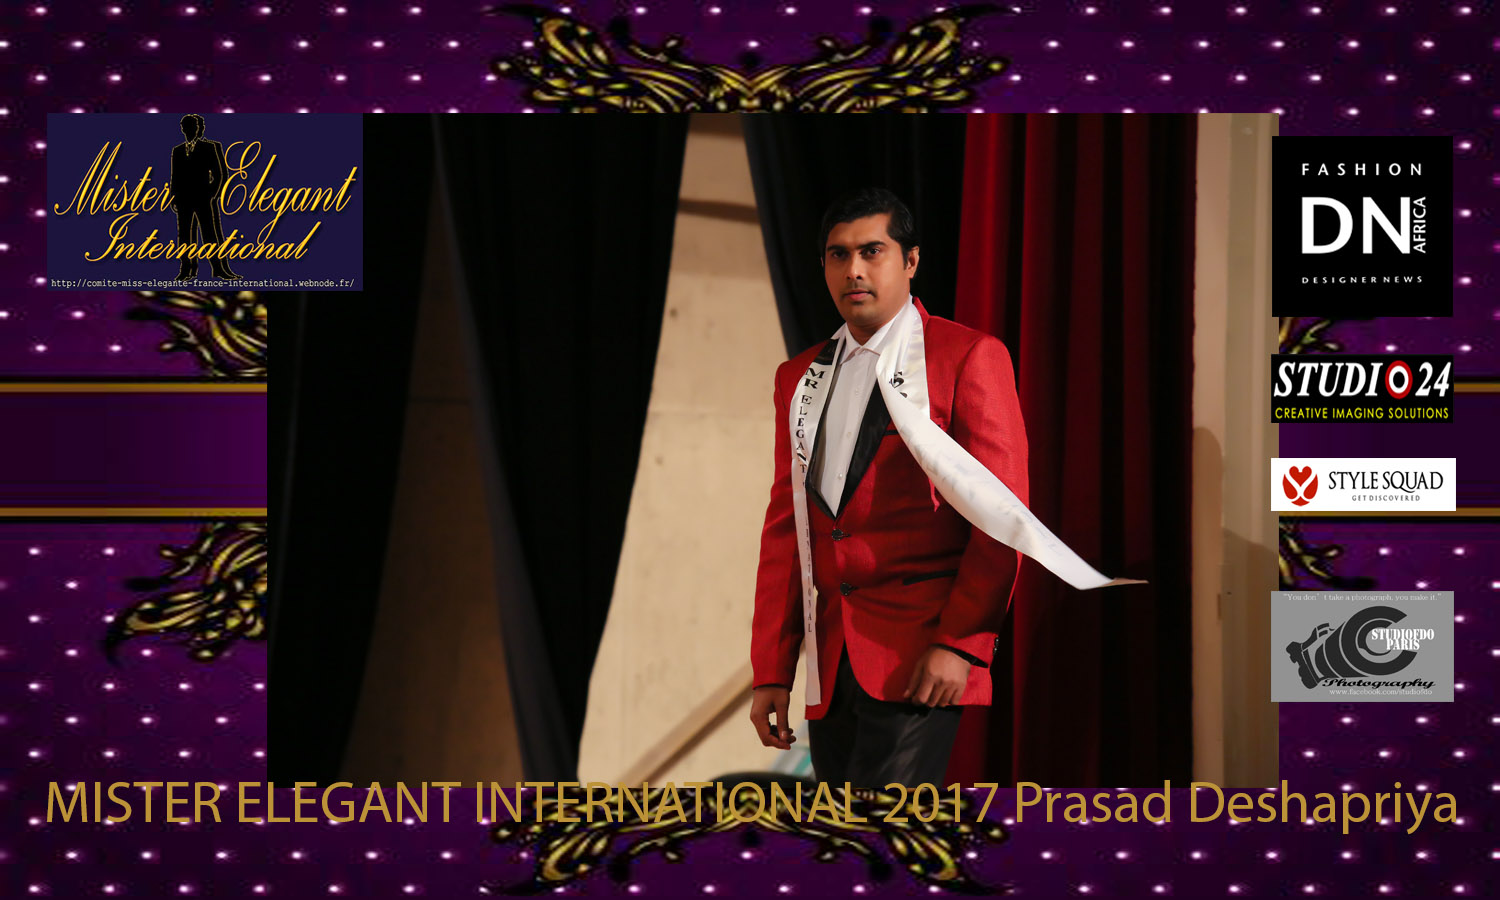 MODE AFRICAINE-MISTER ELEGANT INTERNATIONAL-2017-DNAFRICA-AFRICAN FASHION STYLE